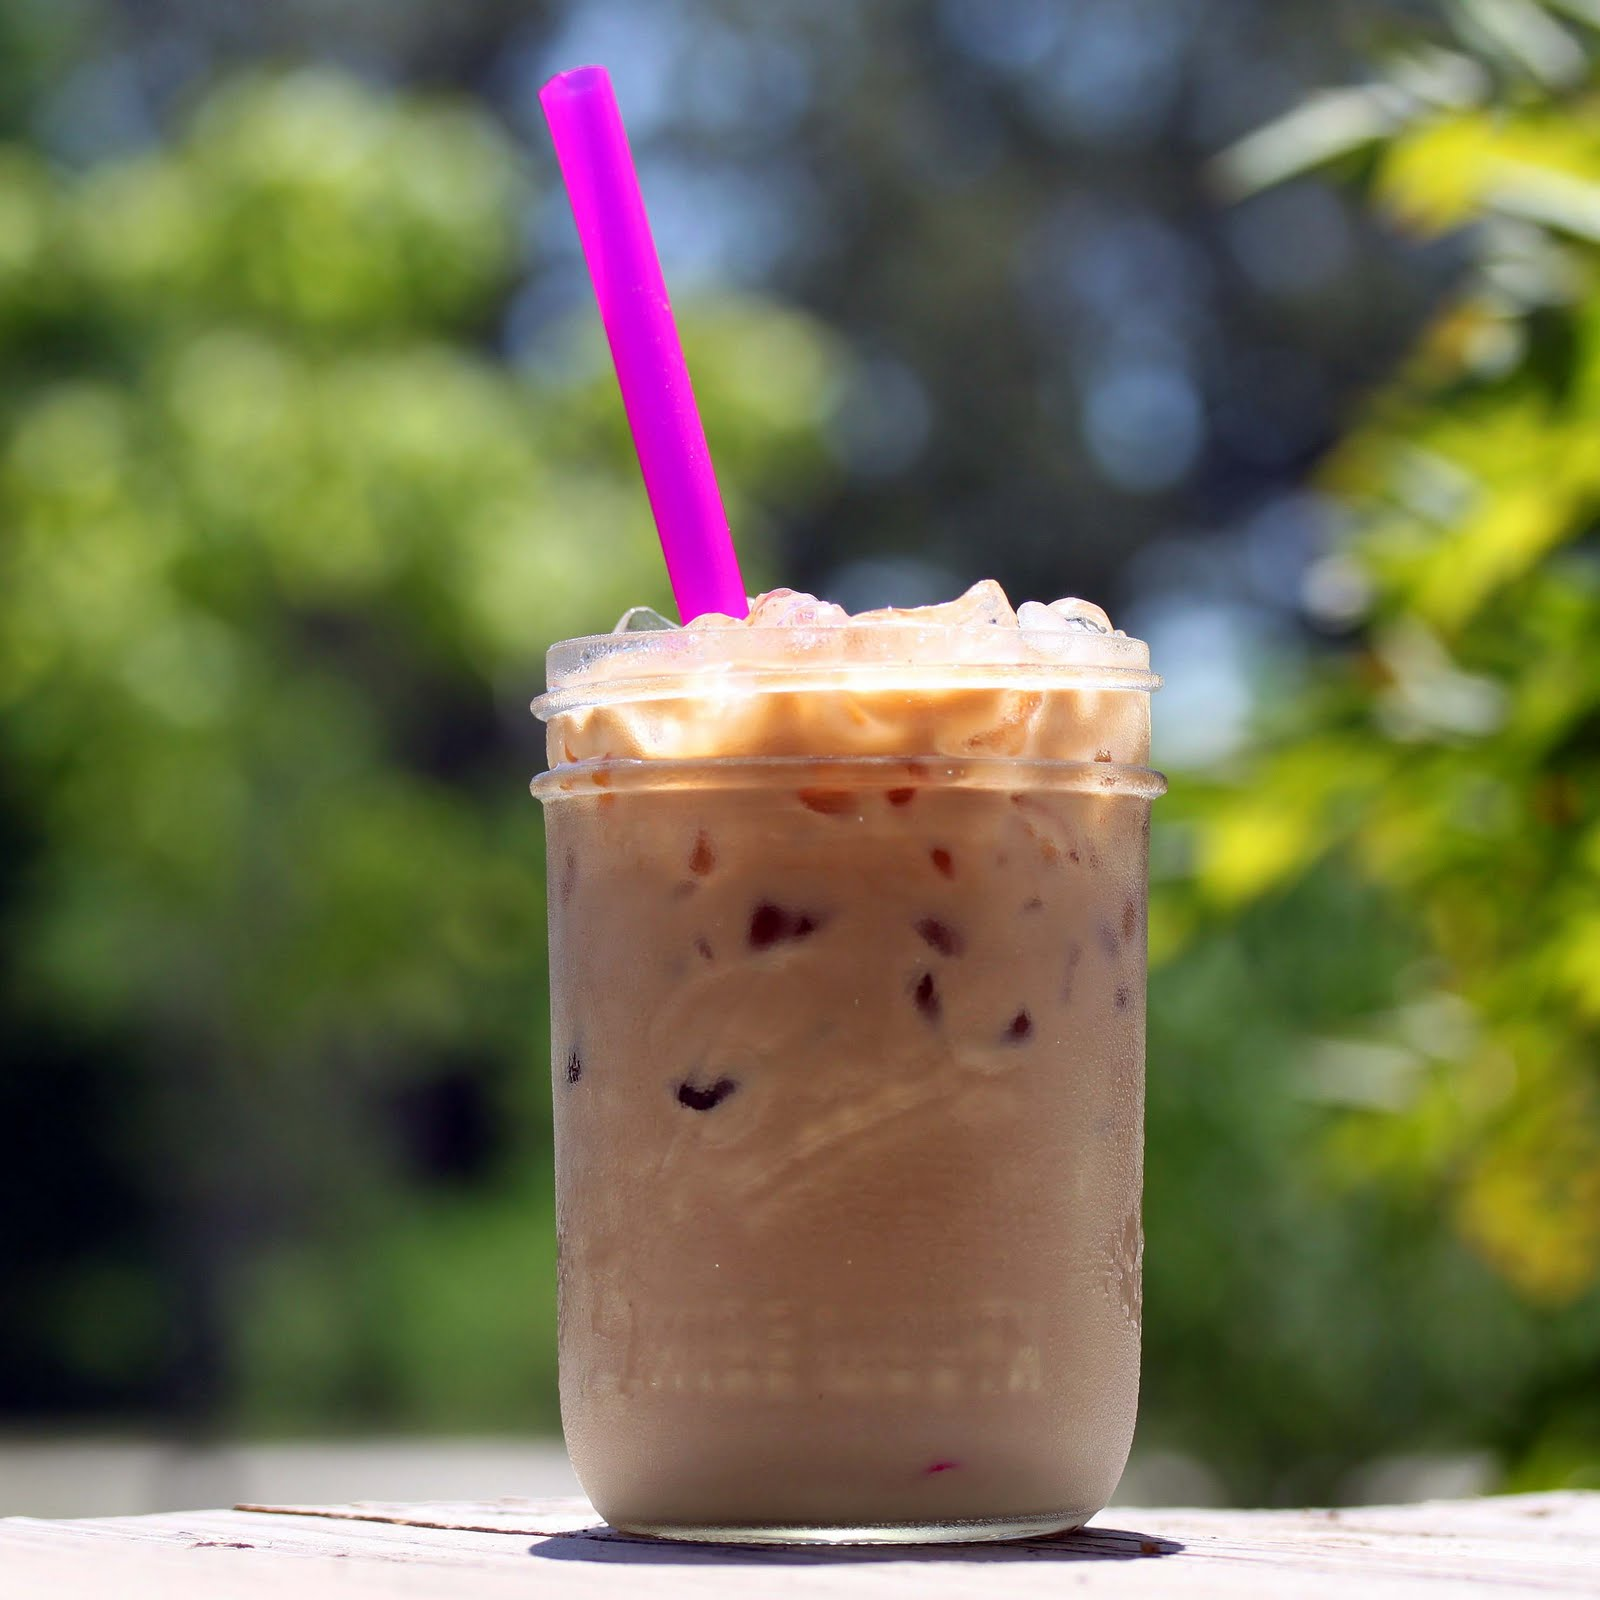 The Homesteading Housewife: The Last Iced Coffee Recipe ...